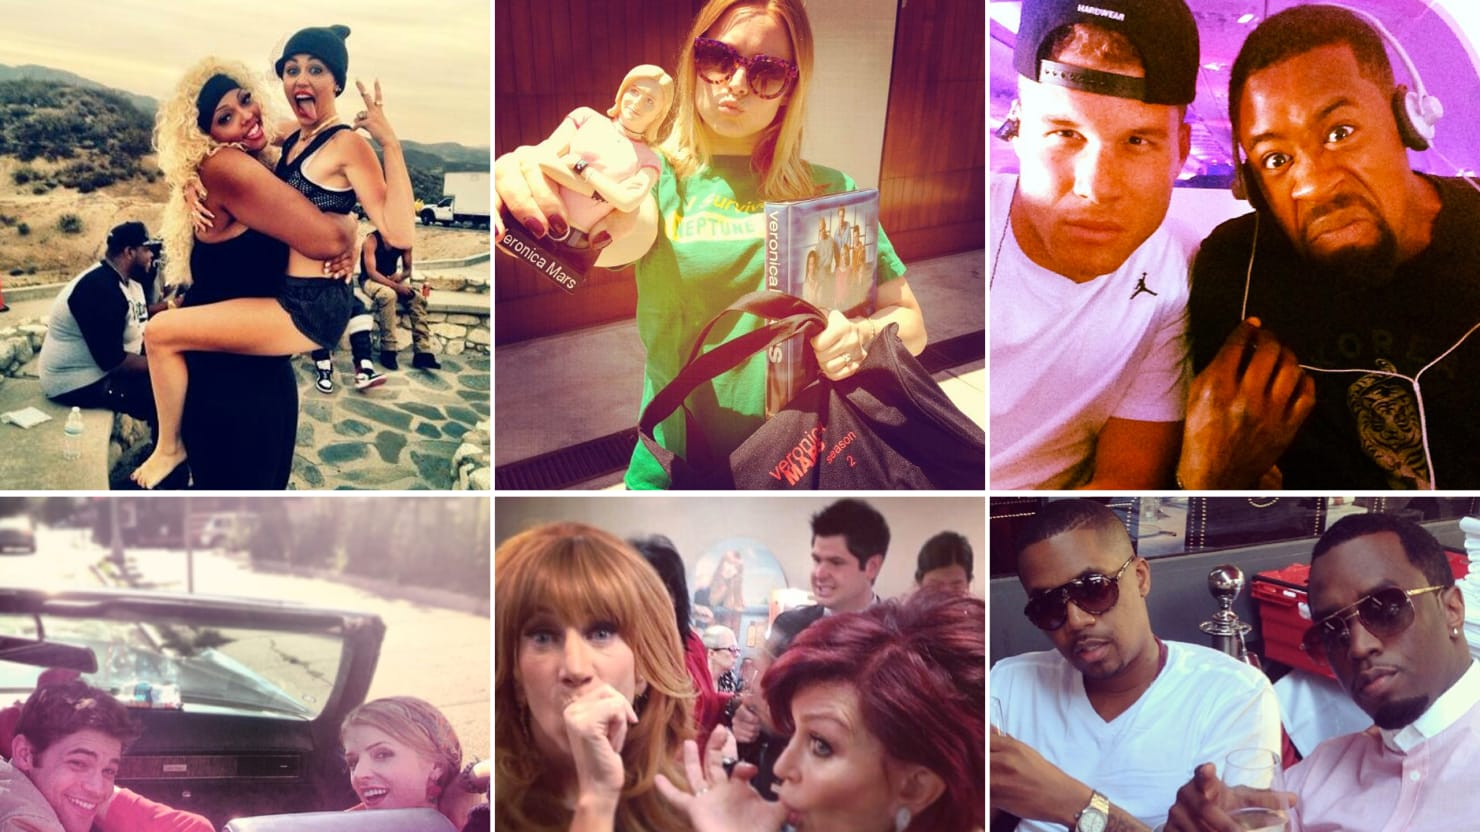 Miley Cyrus, Shakira, and More Celebrity Twitter Pictures (PHOTOS)